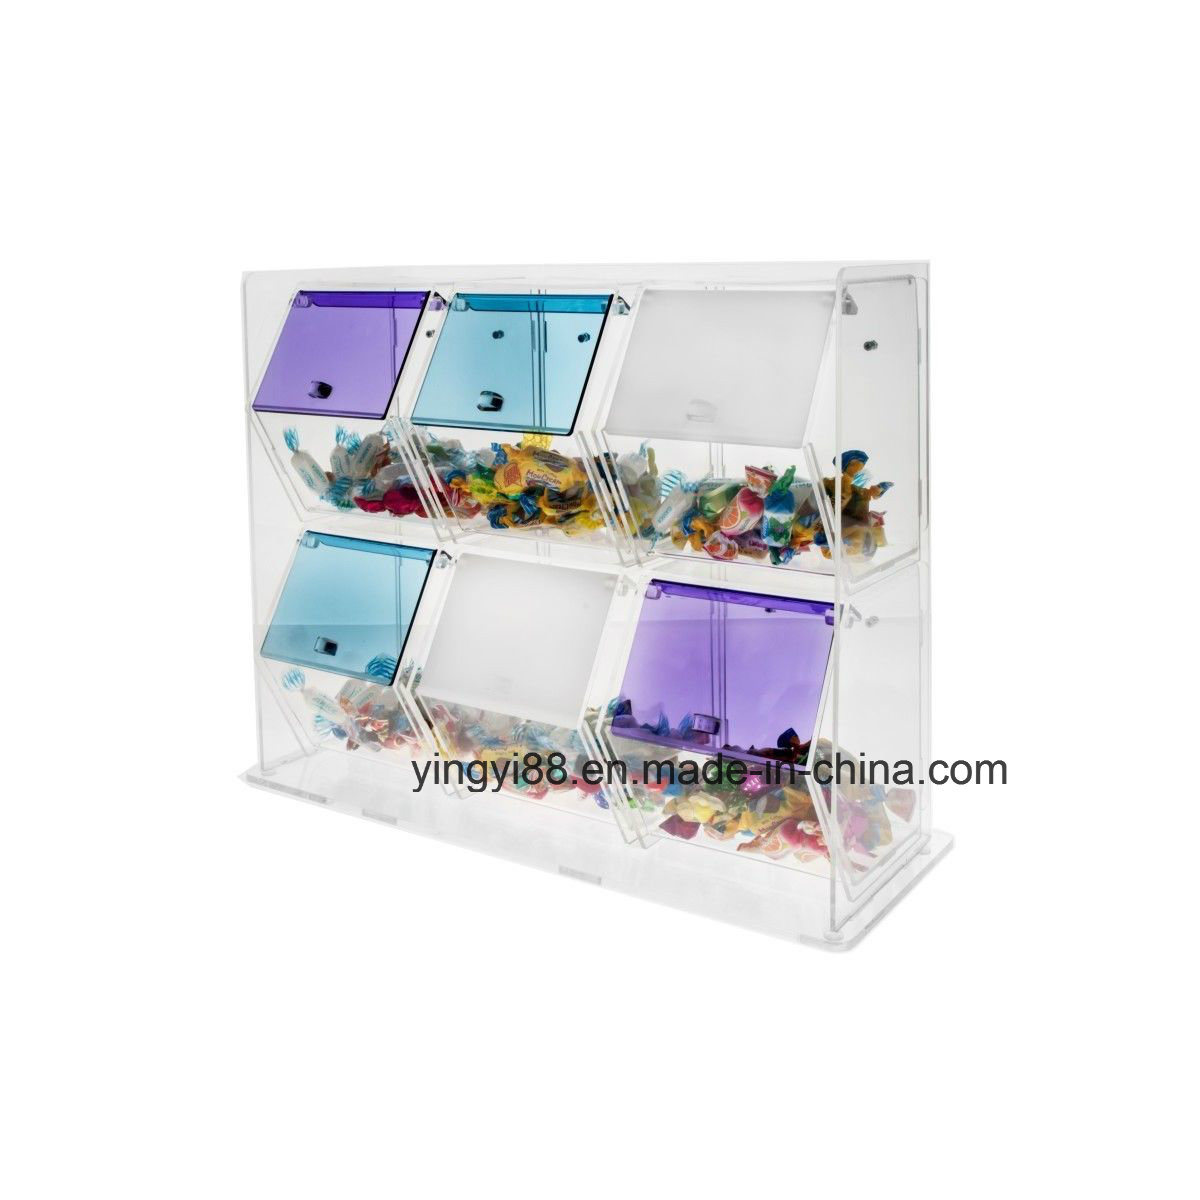 High Quality Acrylic Candy Display Box for Sale